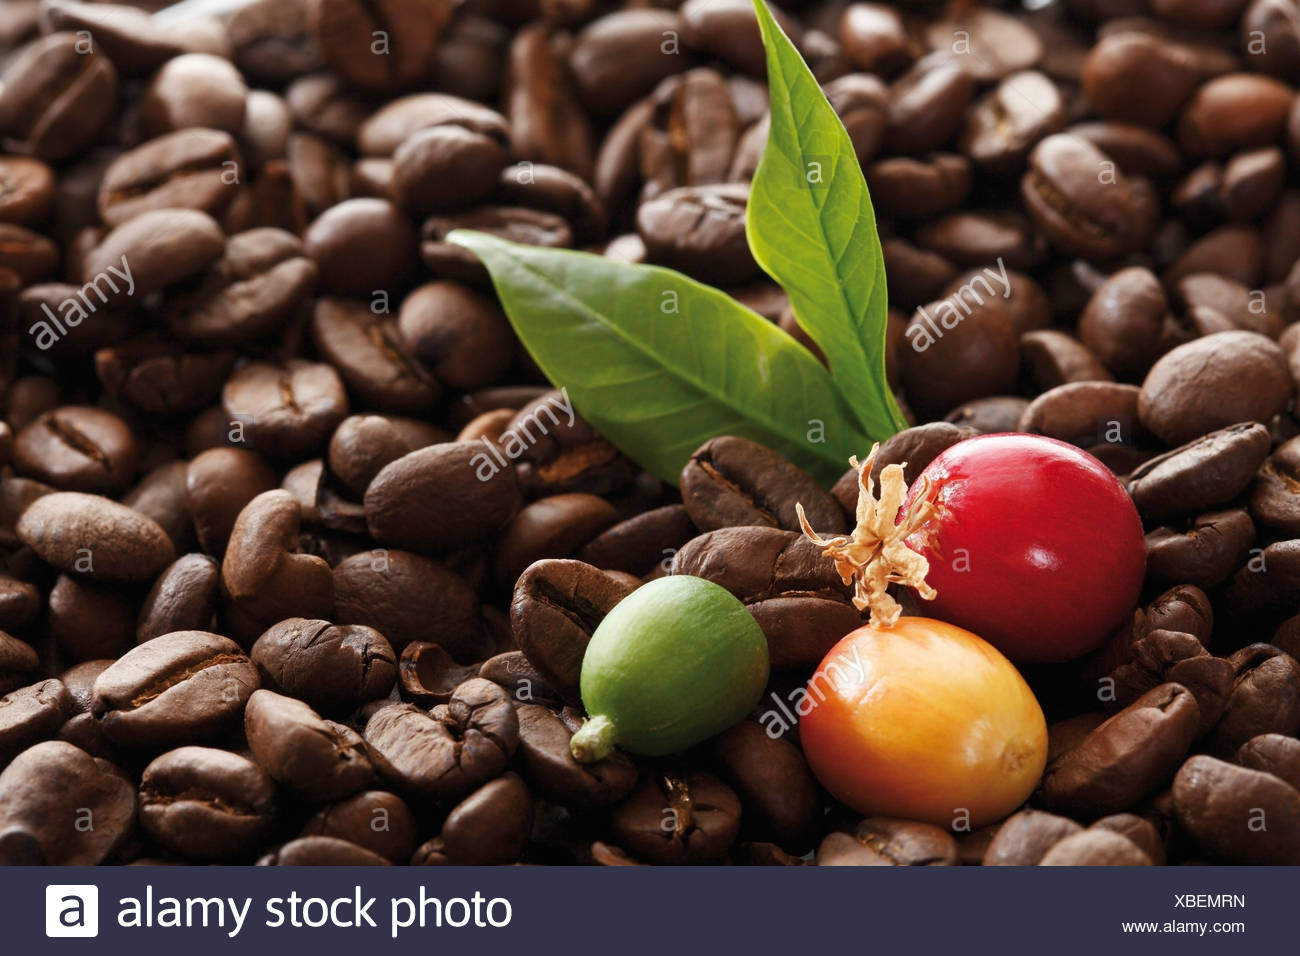 Freshly picked coffee beans on coffee beans at different stages of roasting Stock Photo